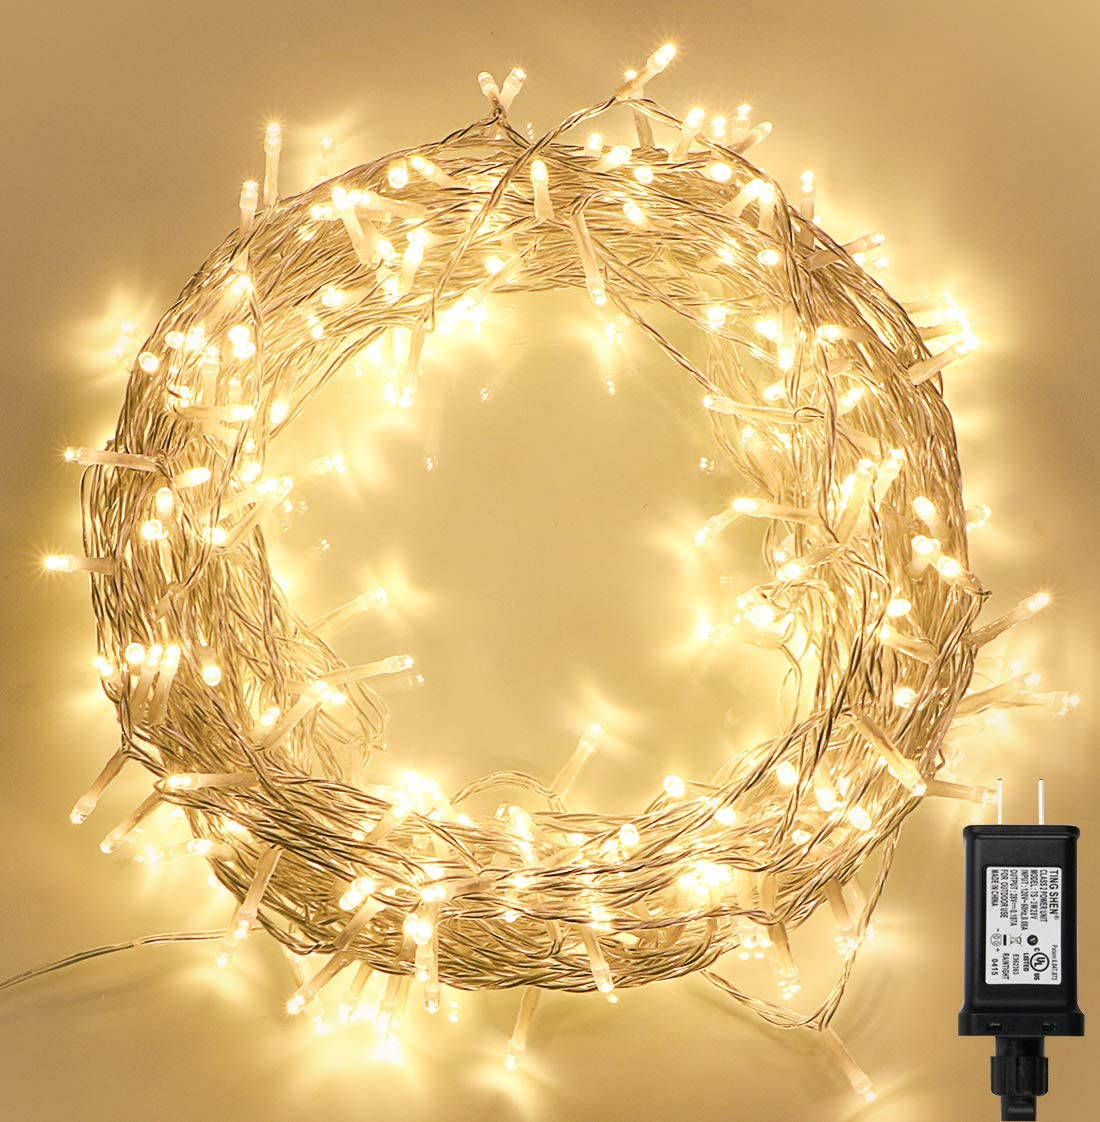 300 LED Indoor String Lights with Remote and Timer on 108ft Clear Fairy Lights for Bedroom, Christmas Decoration (8 Modes, Dimmable, Low Voltage Plug, Warm White)